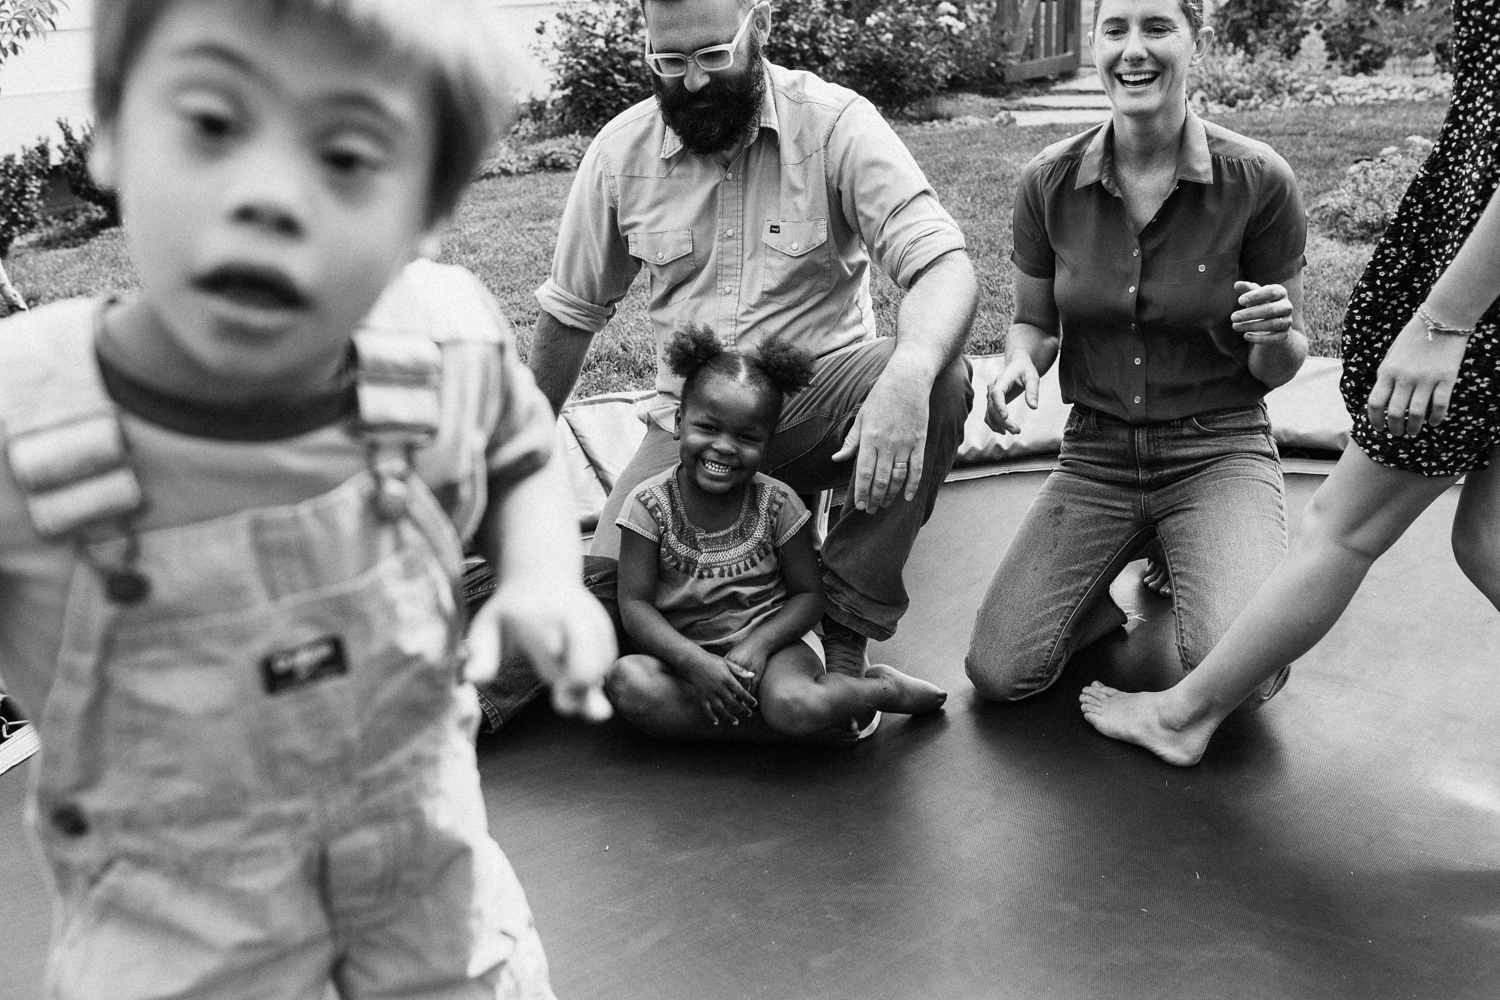 natural-and-artistic-family-photo-on-trampoline-salt-lake-utah